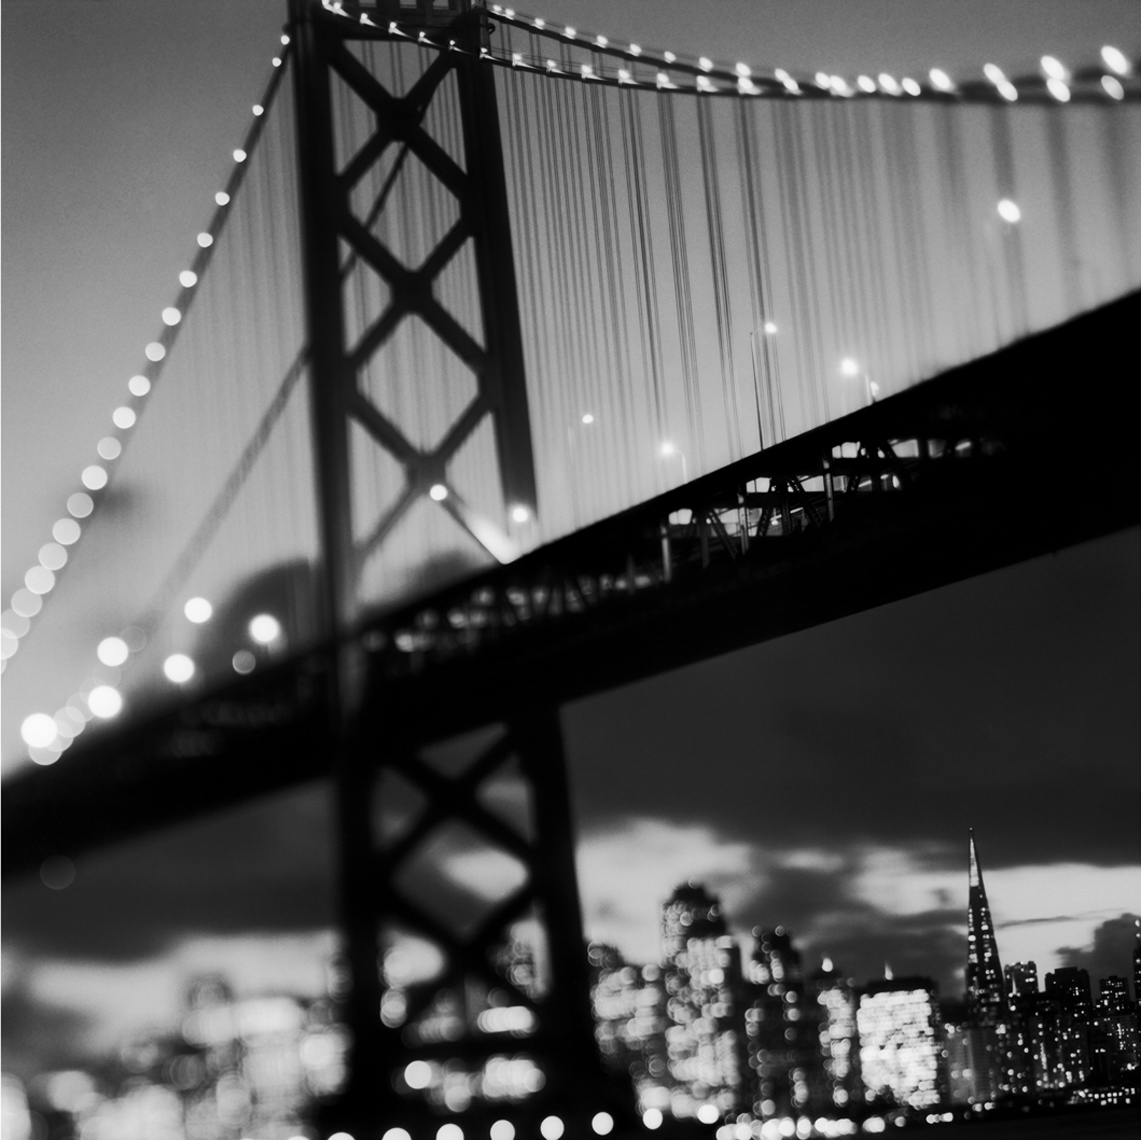 109_SF_baybridge_nite_fin_urbanDigital